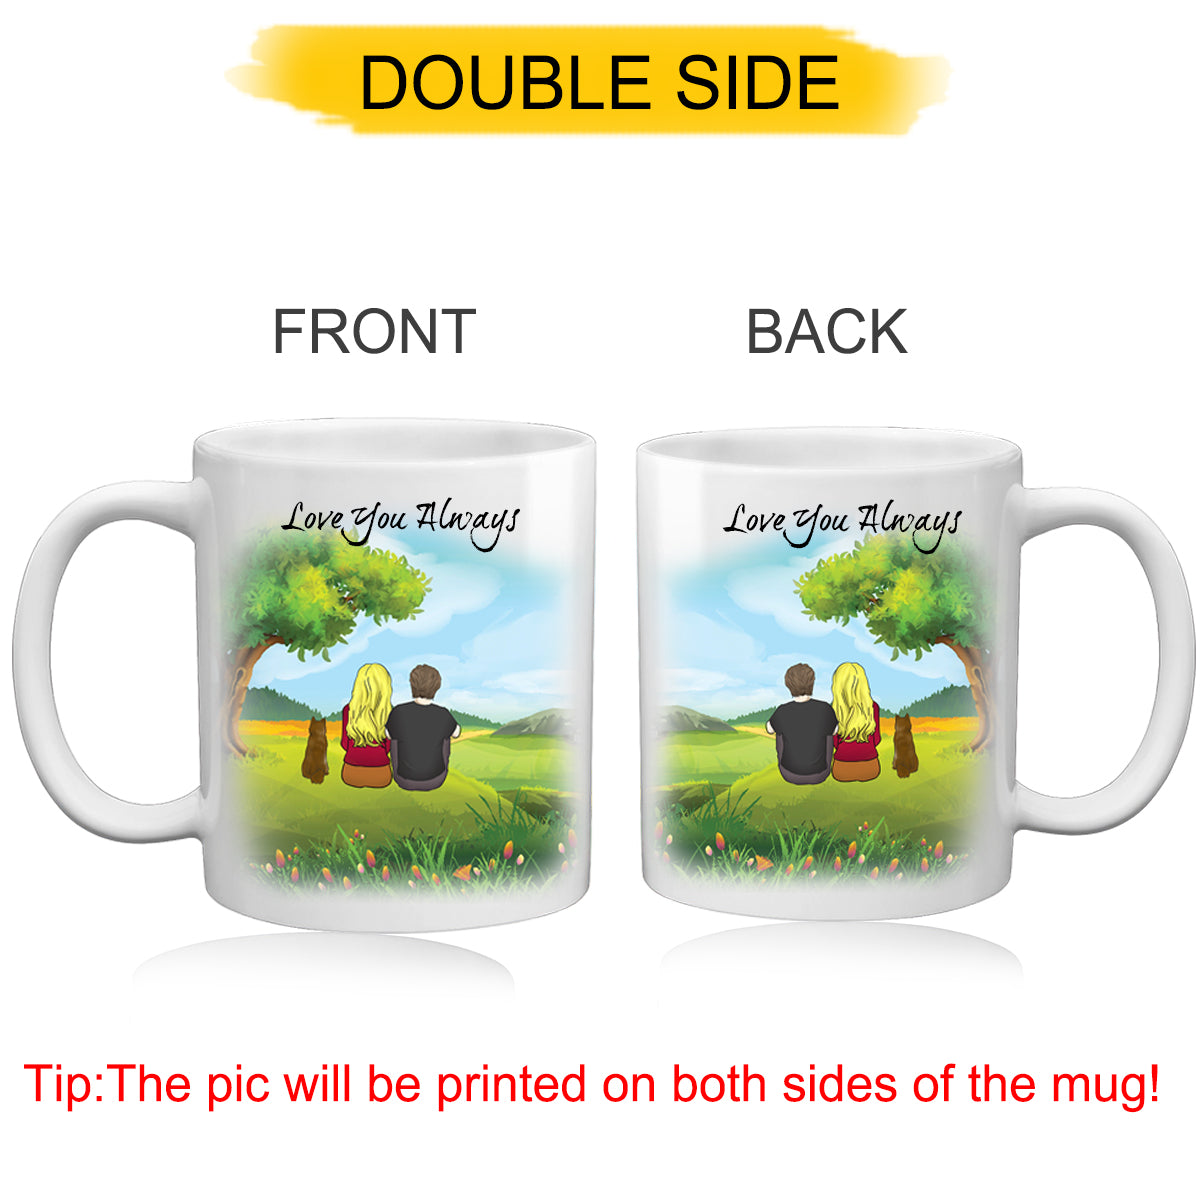 Personalized Couple Mug For Women Men Personalized Gifts丨amlion Store